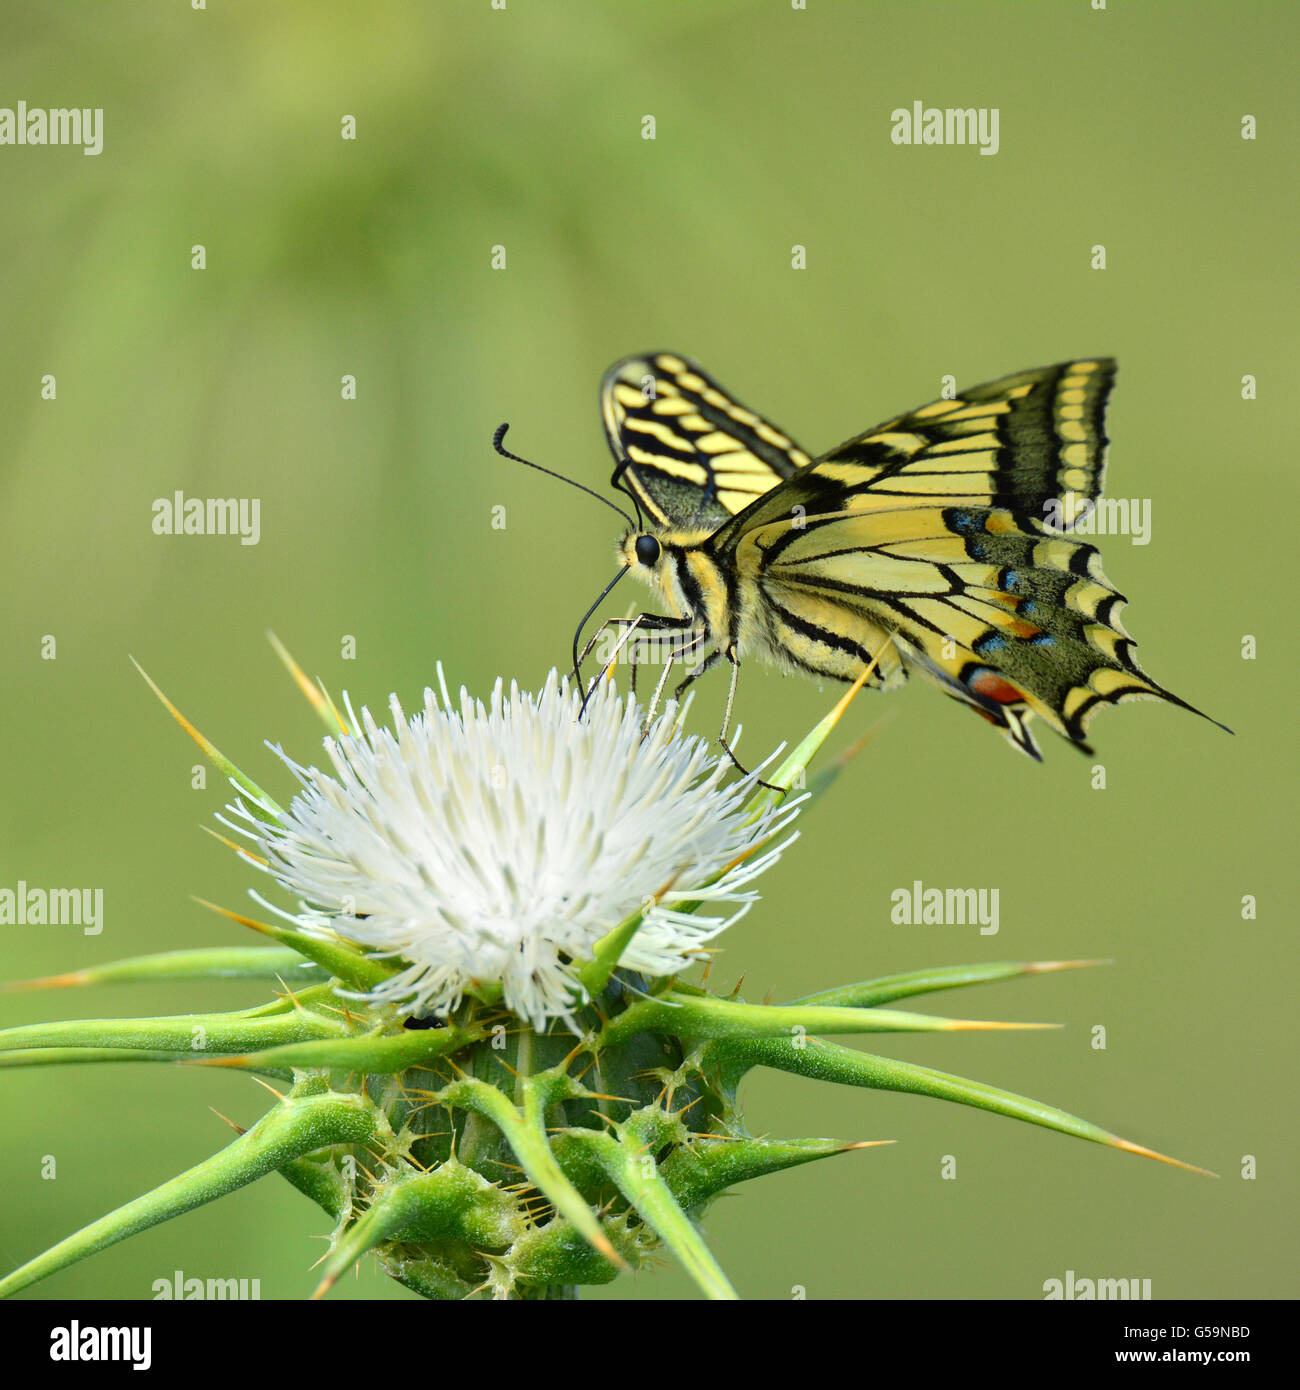 Swallowtail butterfly on thorn - Stock Image